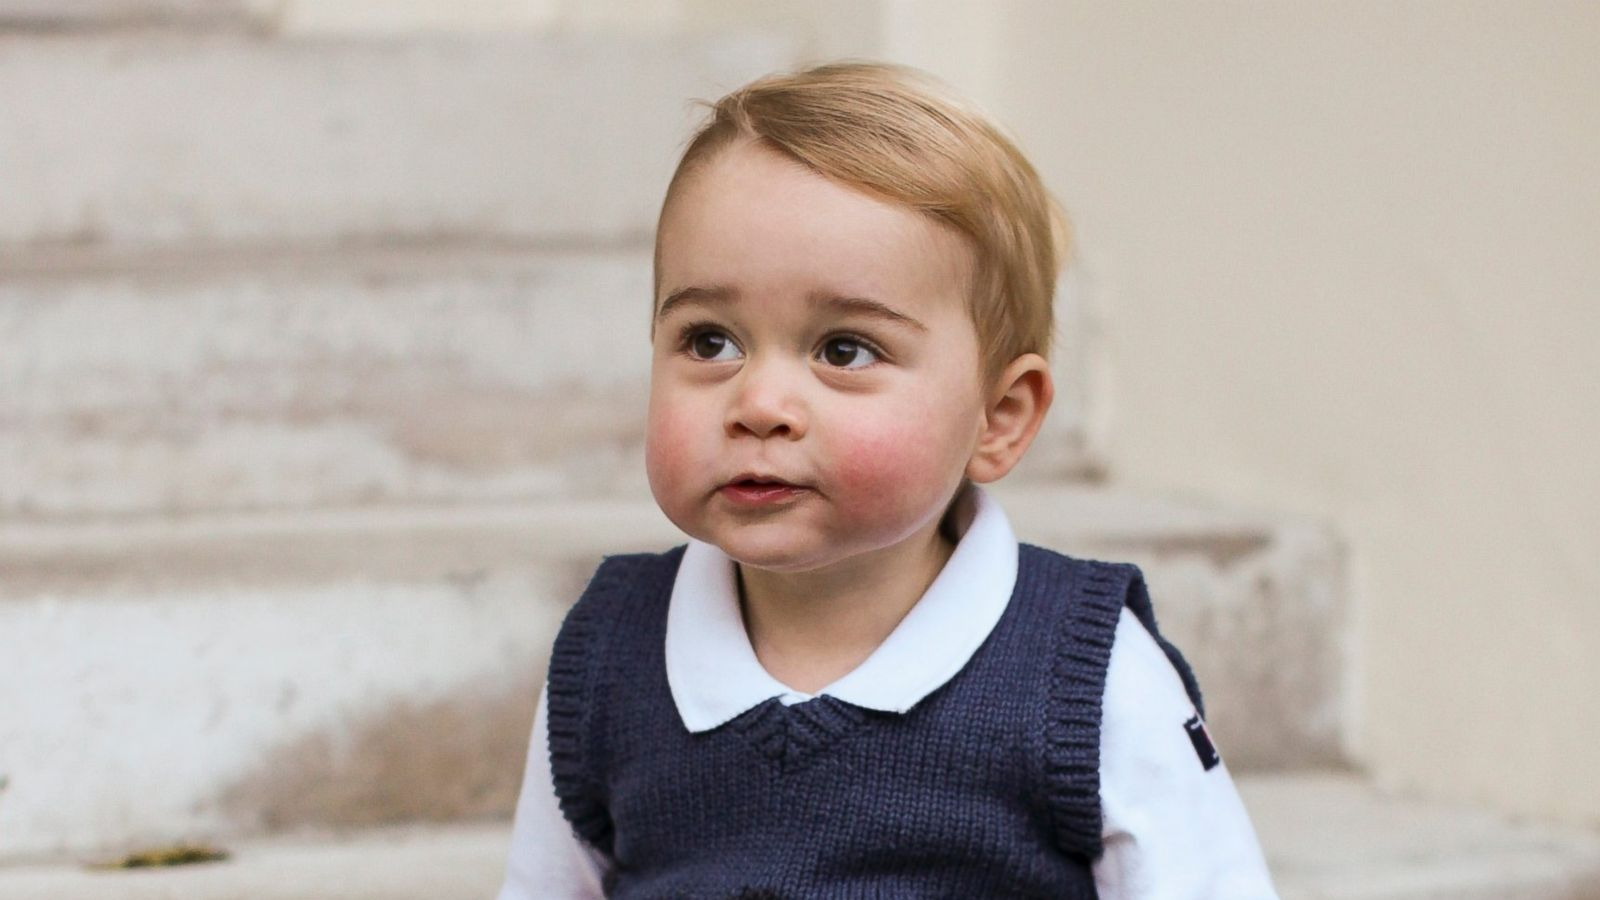 c523b9fdc740 Royal Baby Birth  What Prince George s Childhood Will Be Like With ...